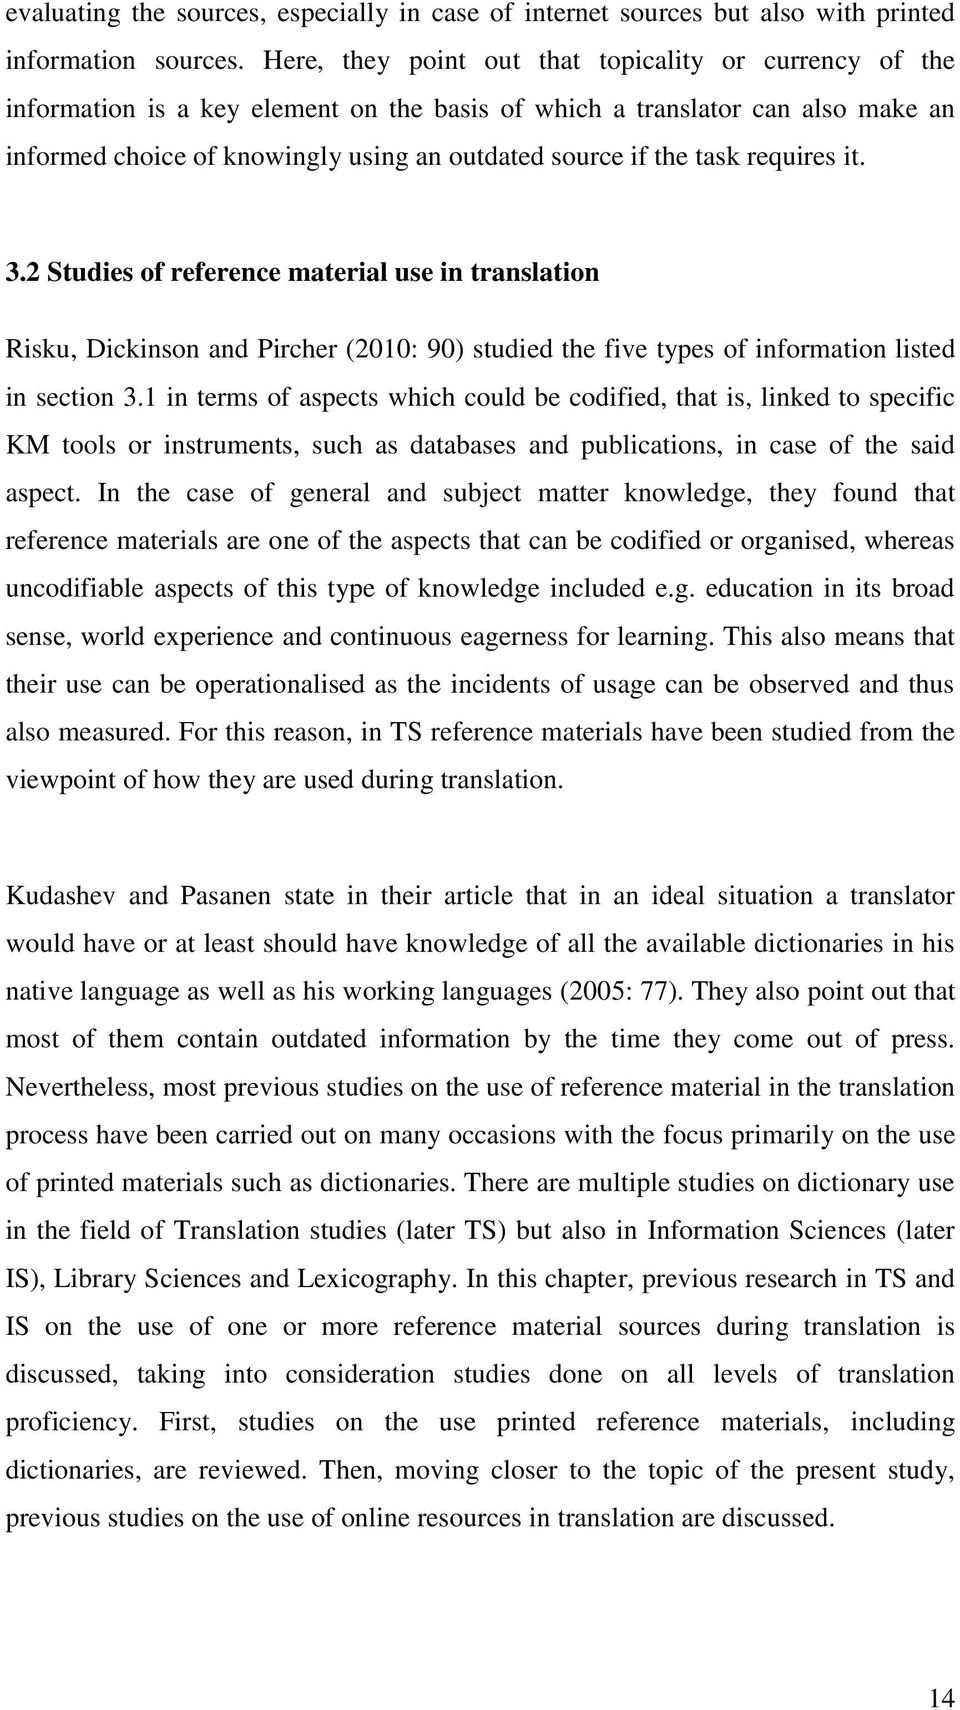 task requires it. 3.2 Studies of reference material use in translation Risku, Dickinson and Pircher (2010: 90) studied the five types of information listed in section 3.